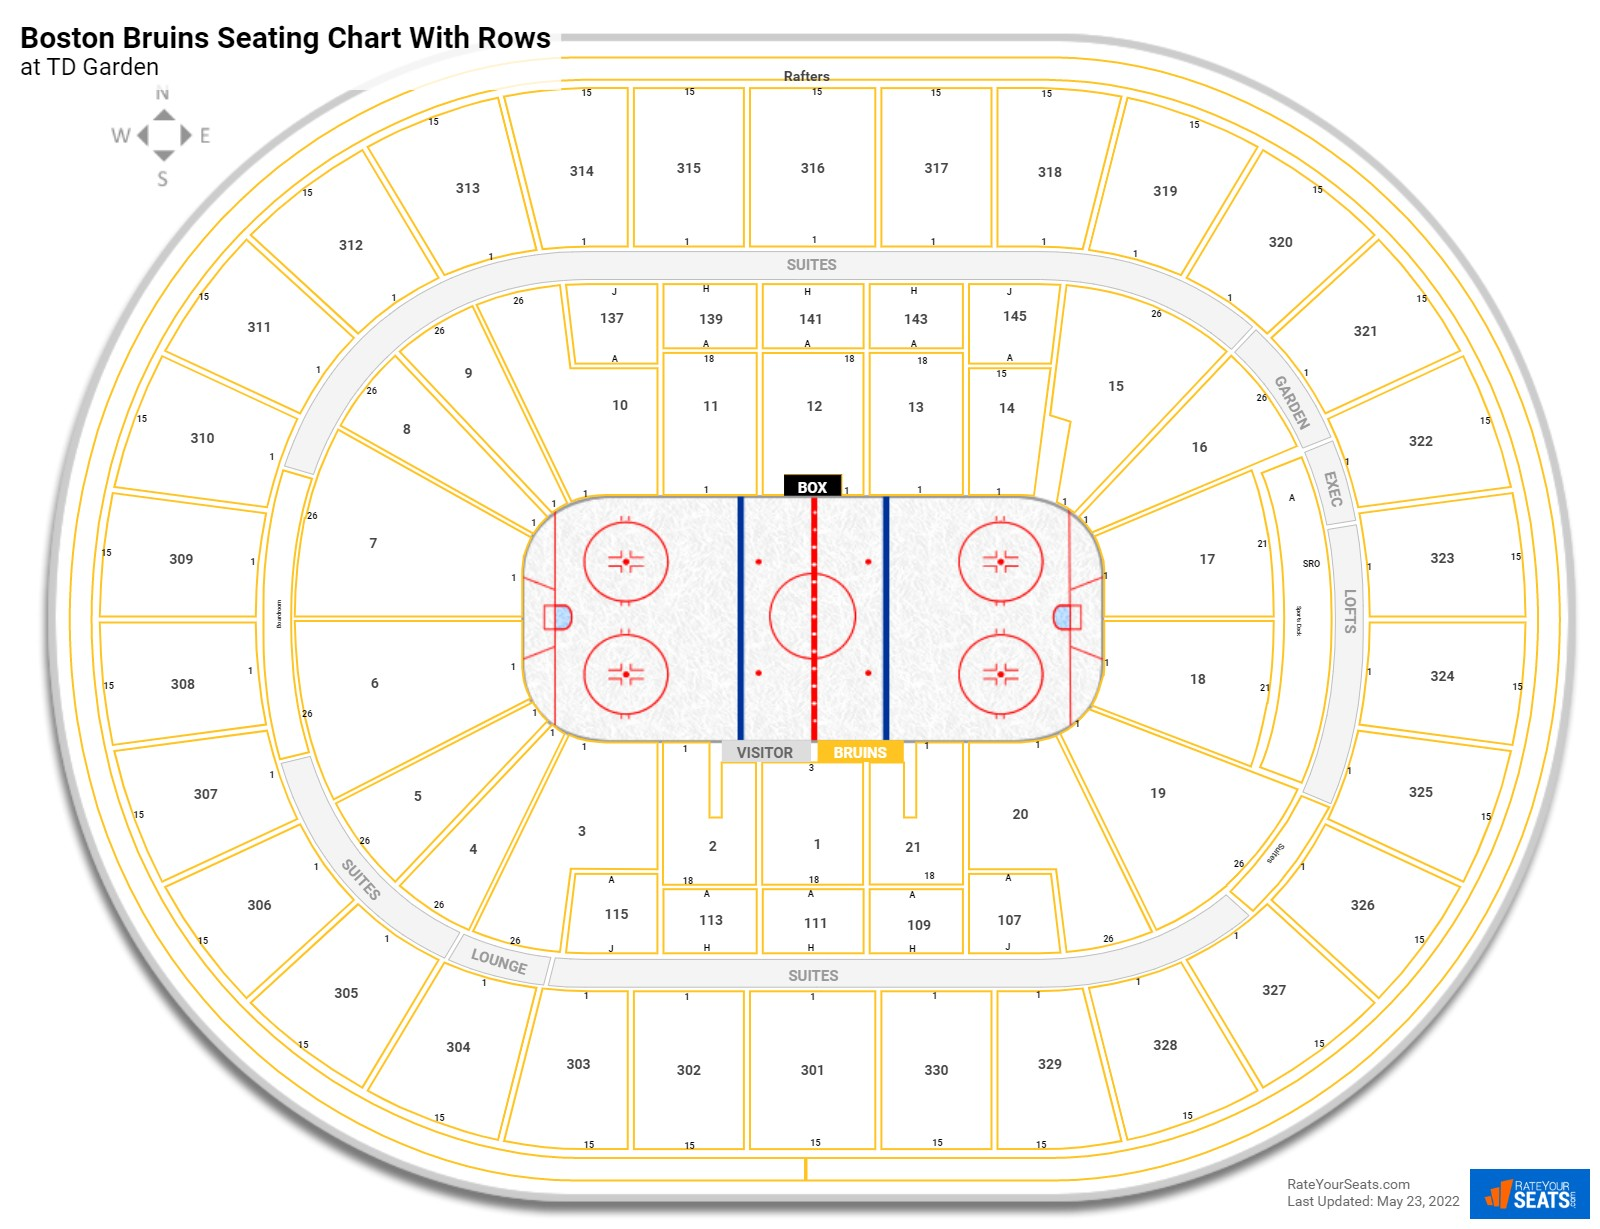 TD Garden seating chart with rows hockey